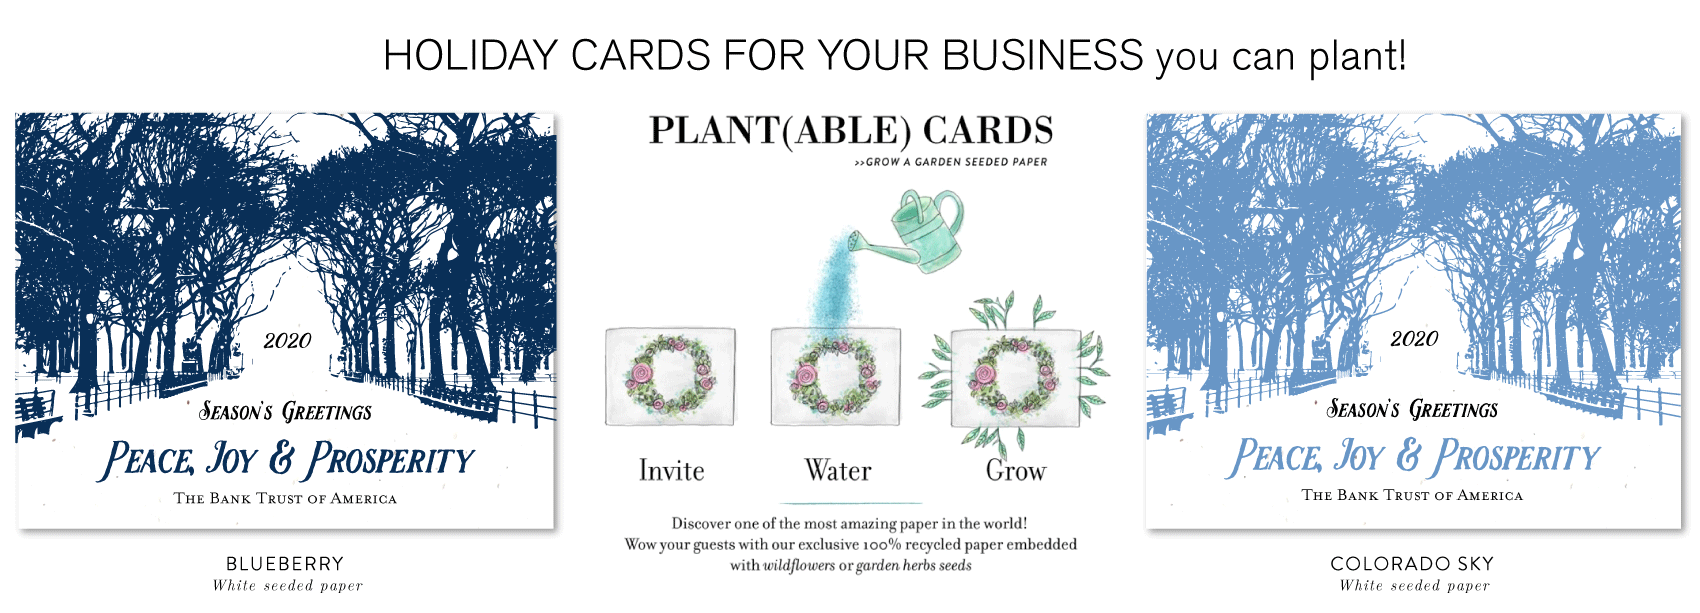 central park holiday cards business